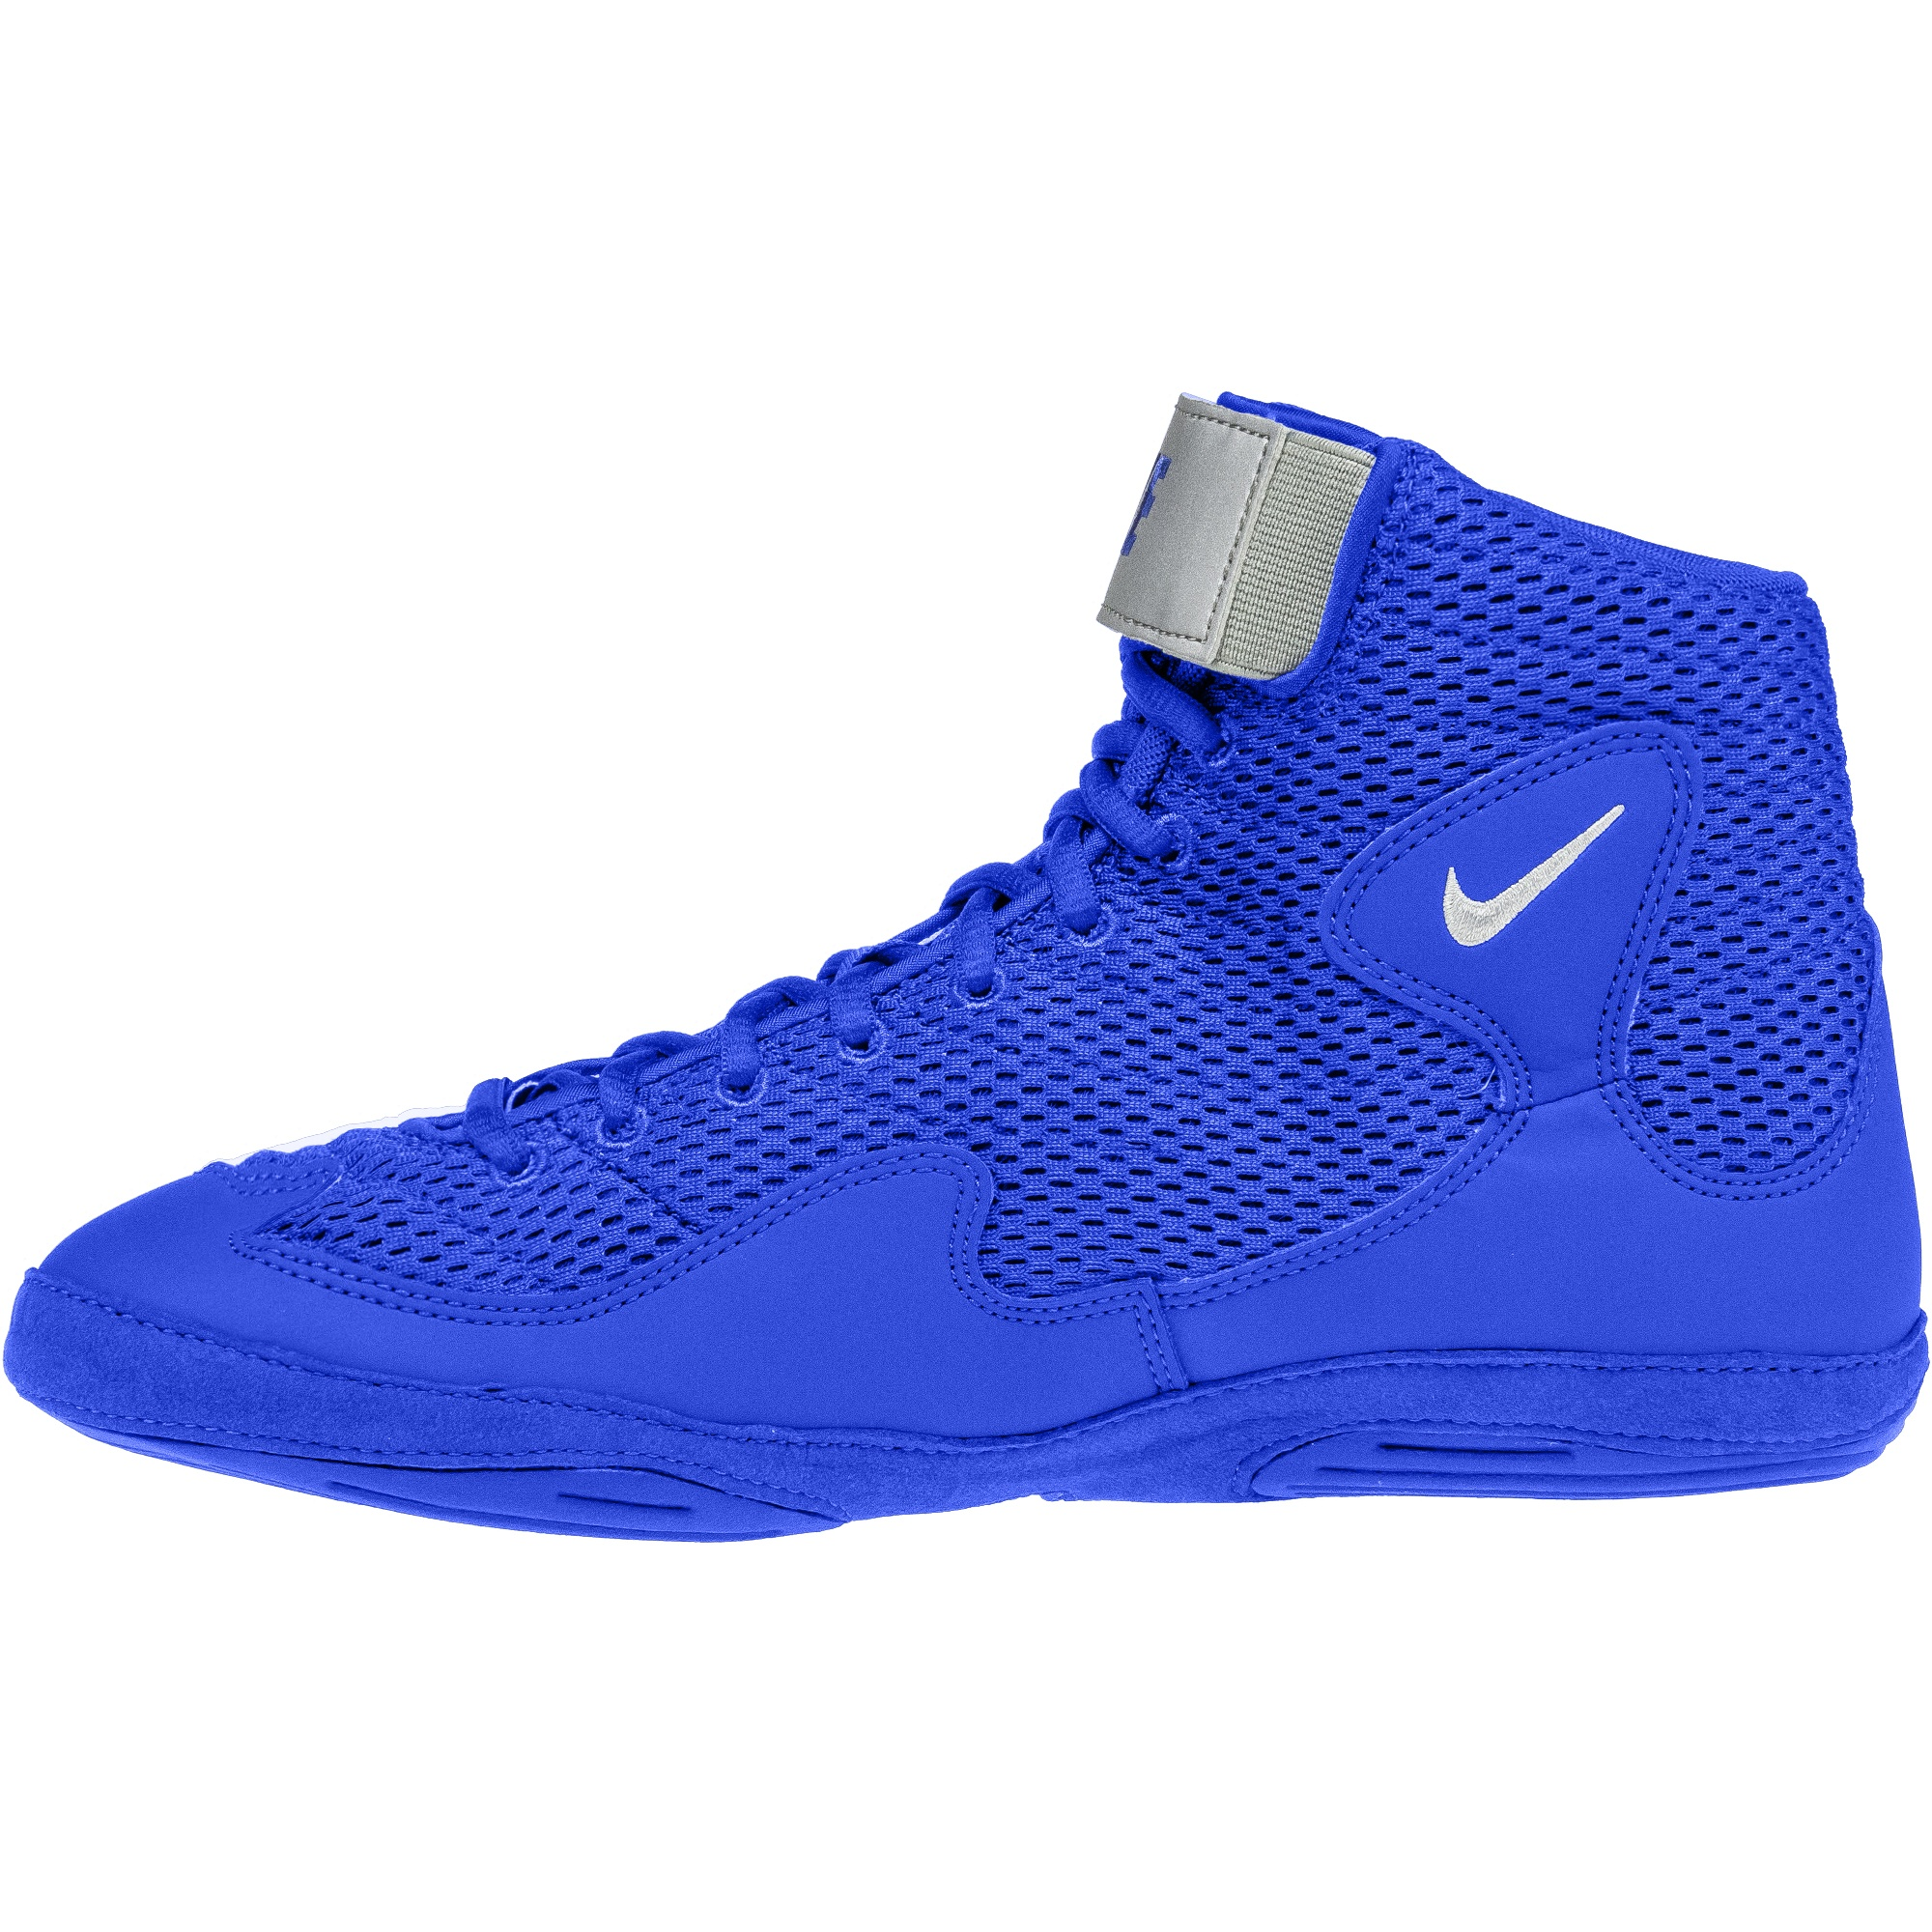 watch 73a83 a3a14 ... insideNike Inflict 3 Royal Blue Silver frontNike Inflict 3 Royal Blue  Silver backNike Inflict 3 Royal Blue Silver sole